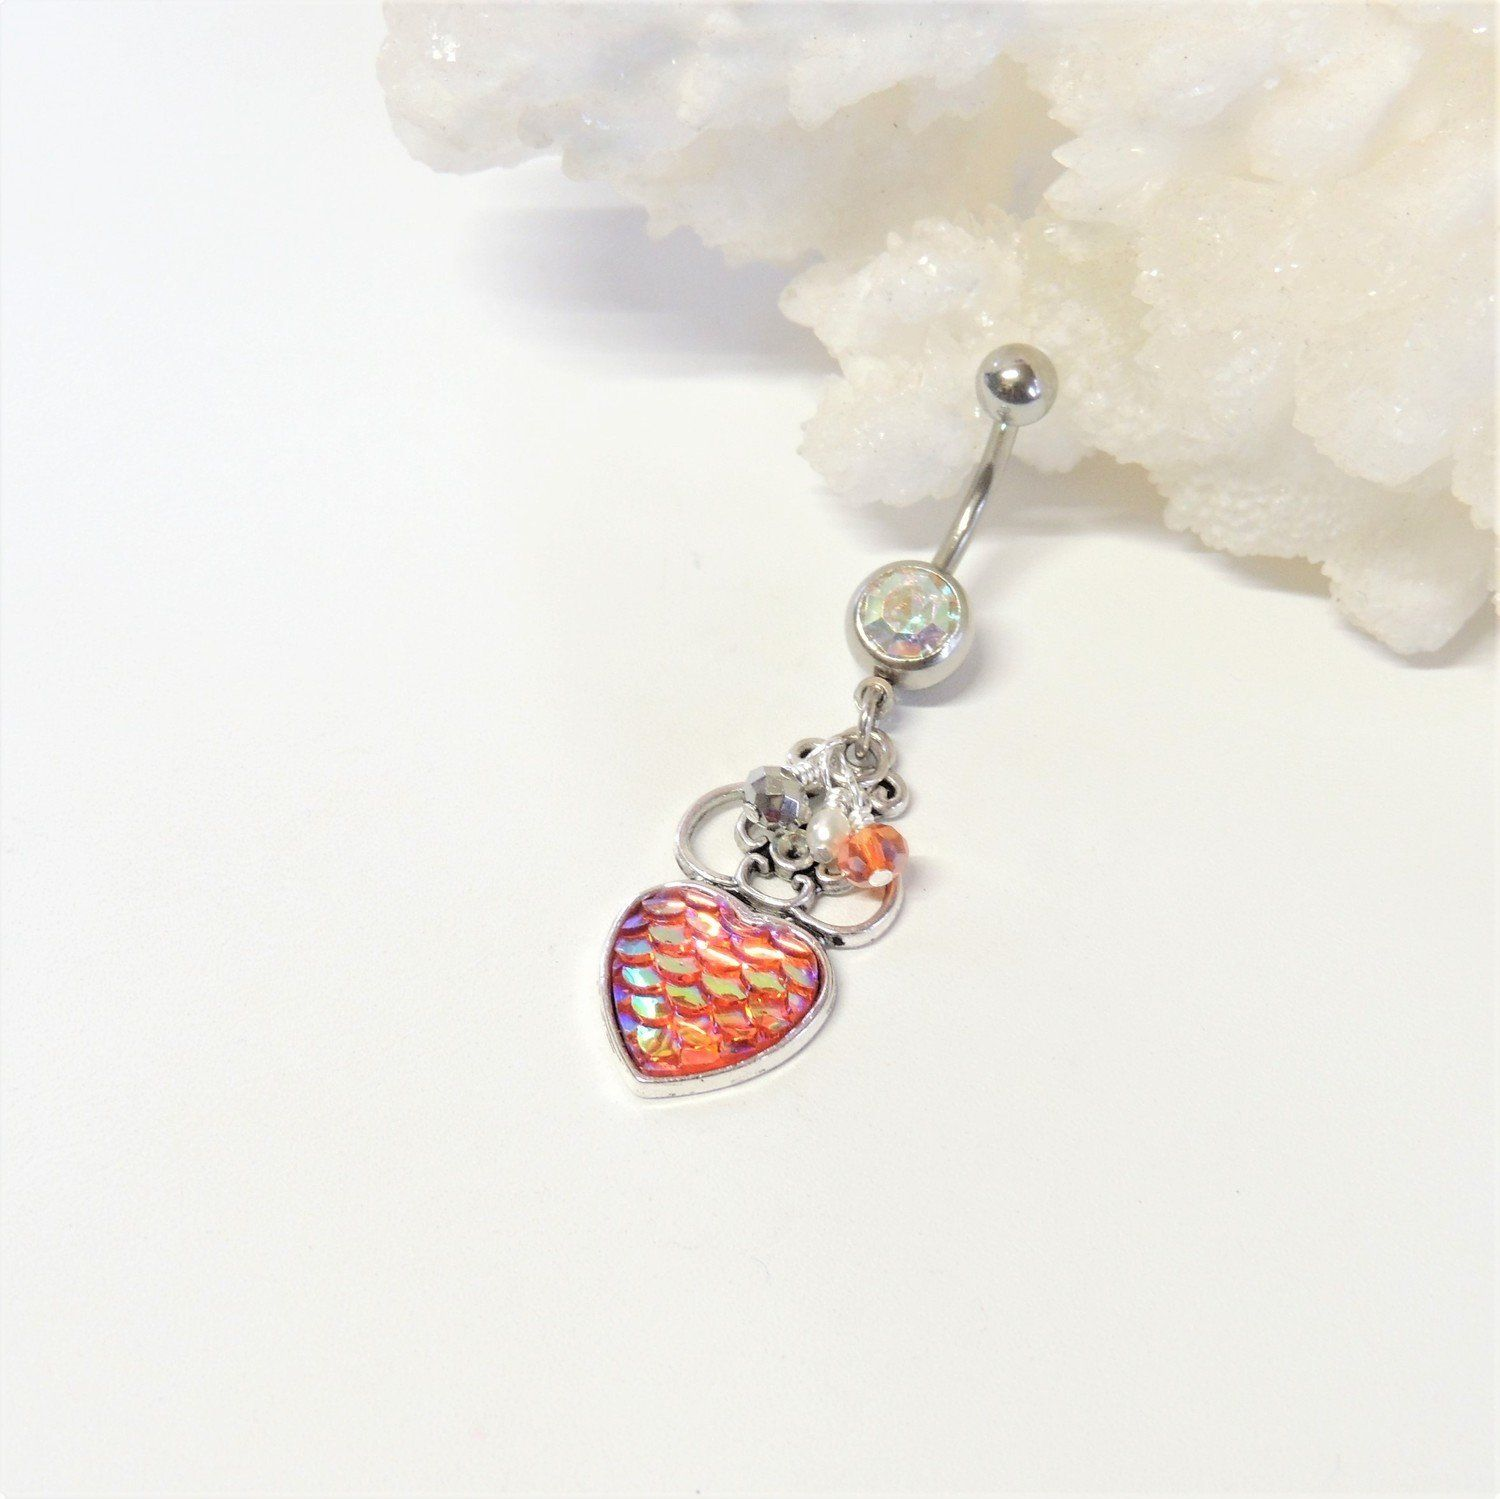 Iridescent Orange Mermaid Scales Heart Dangle Belly Ring Handcrafted